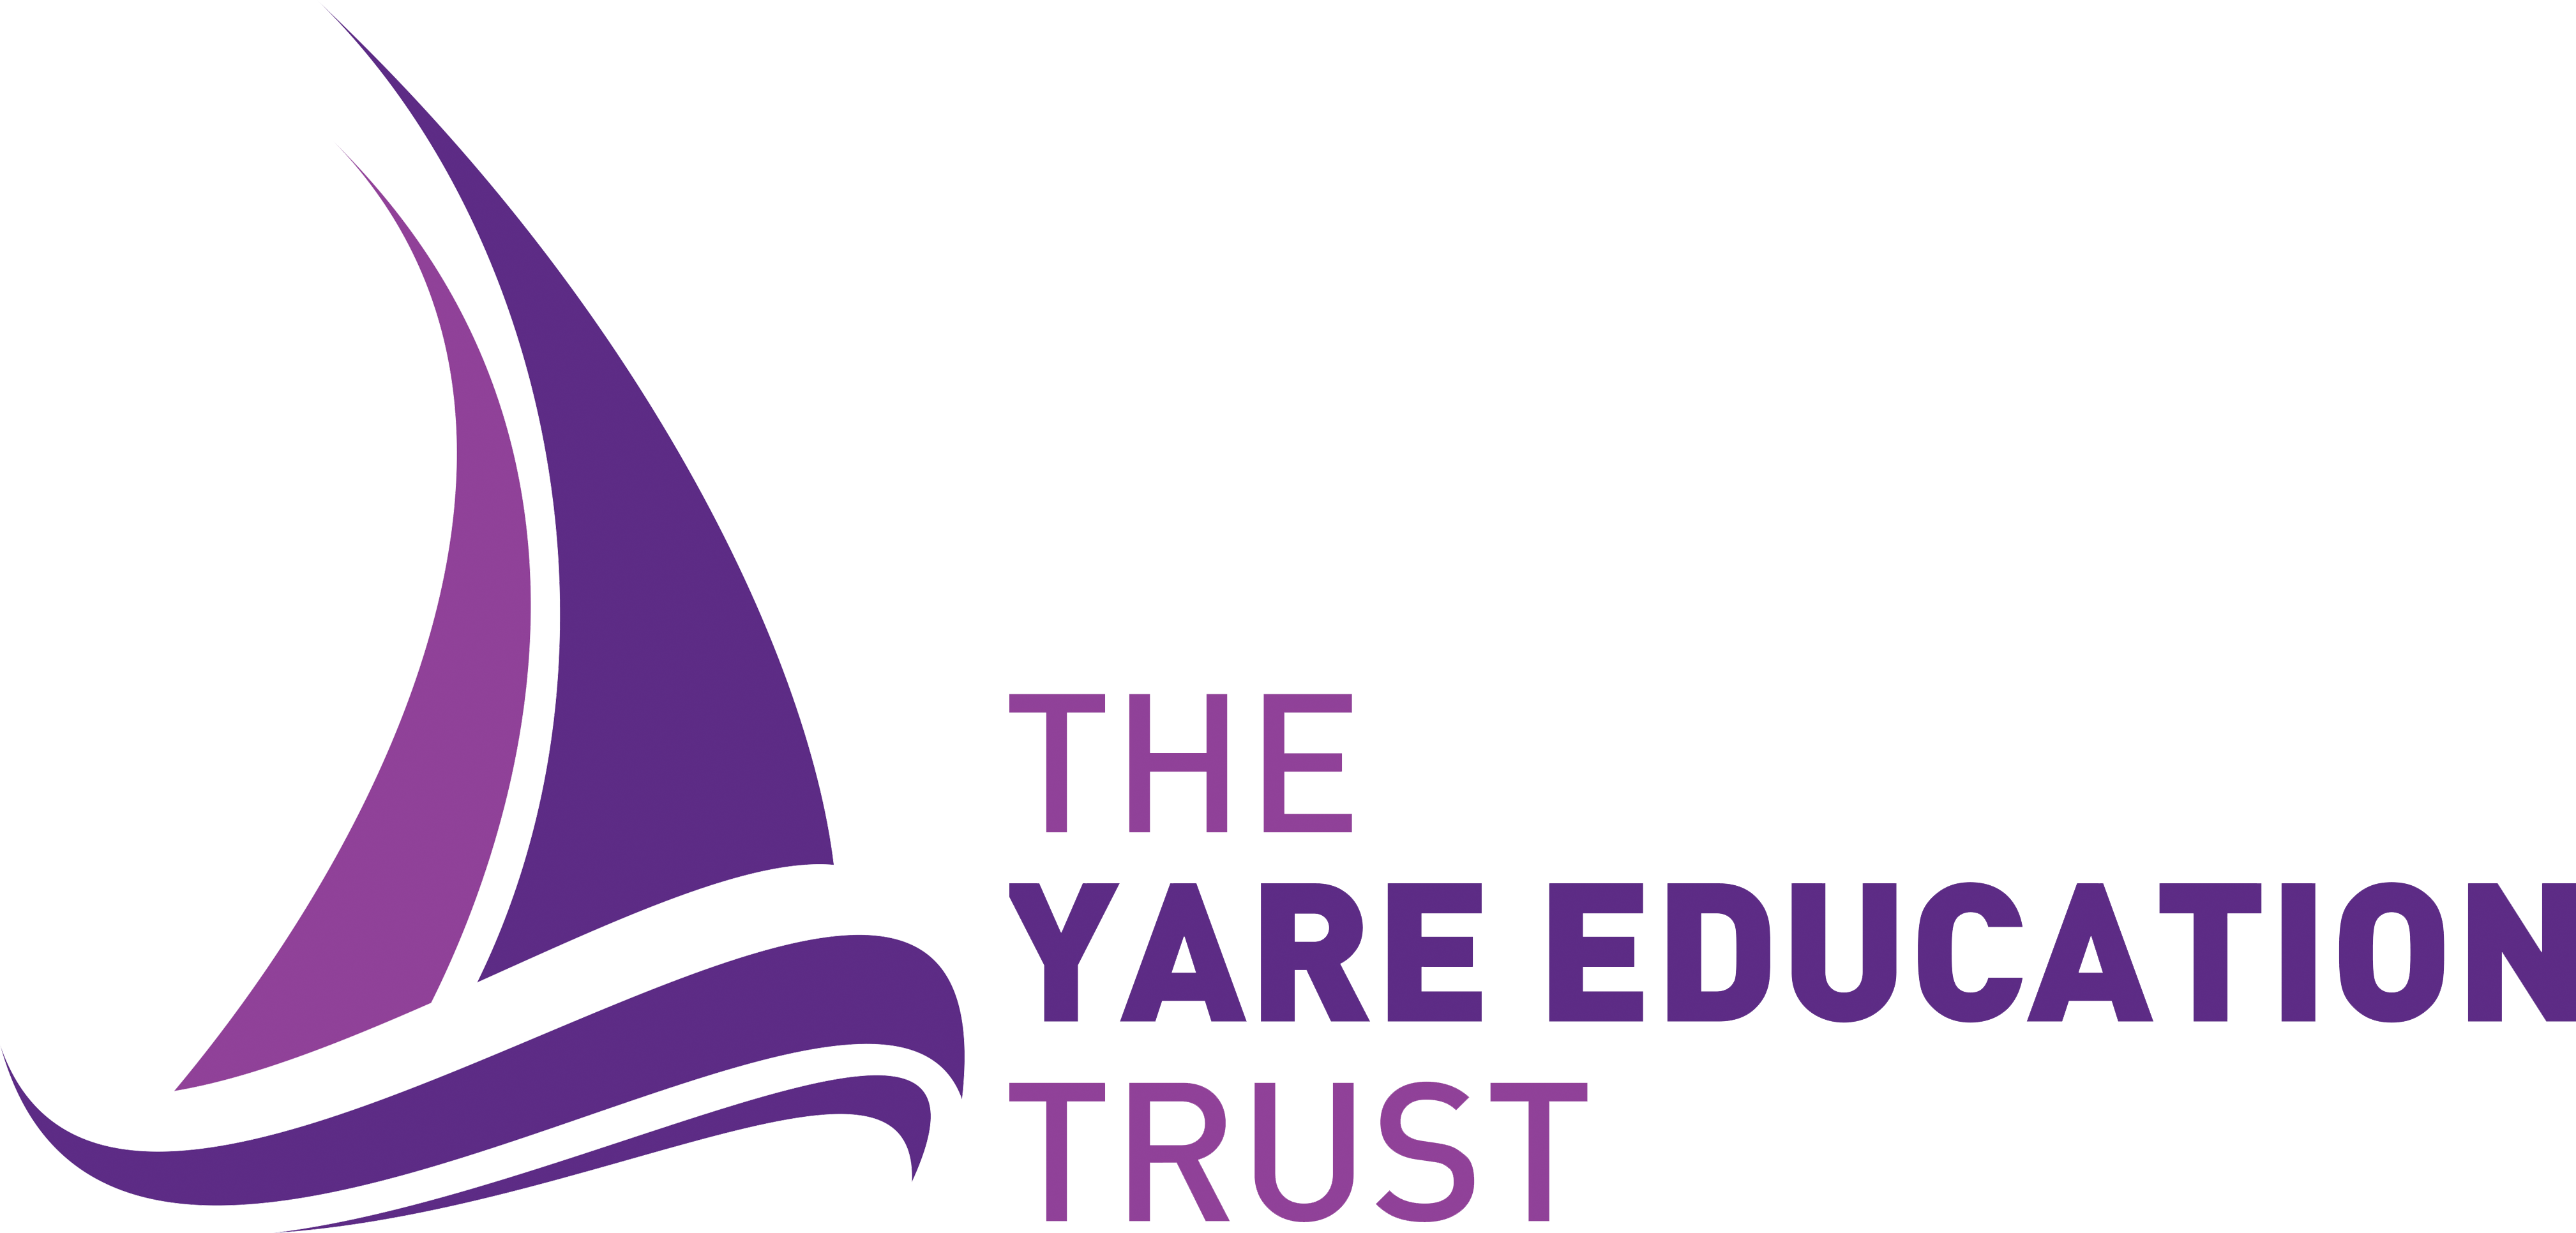 The Yare Education Trust